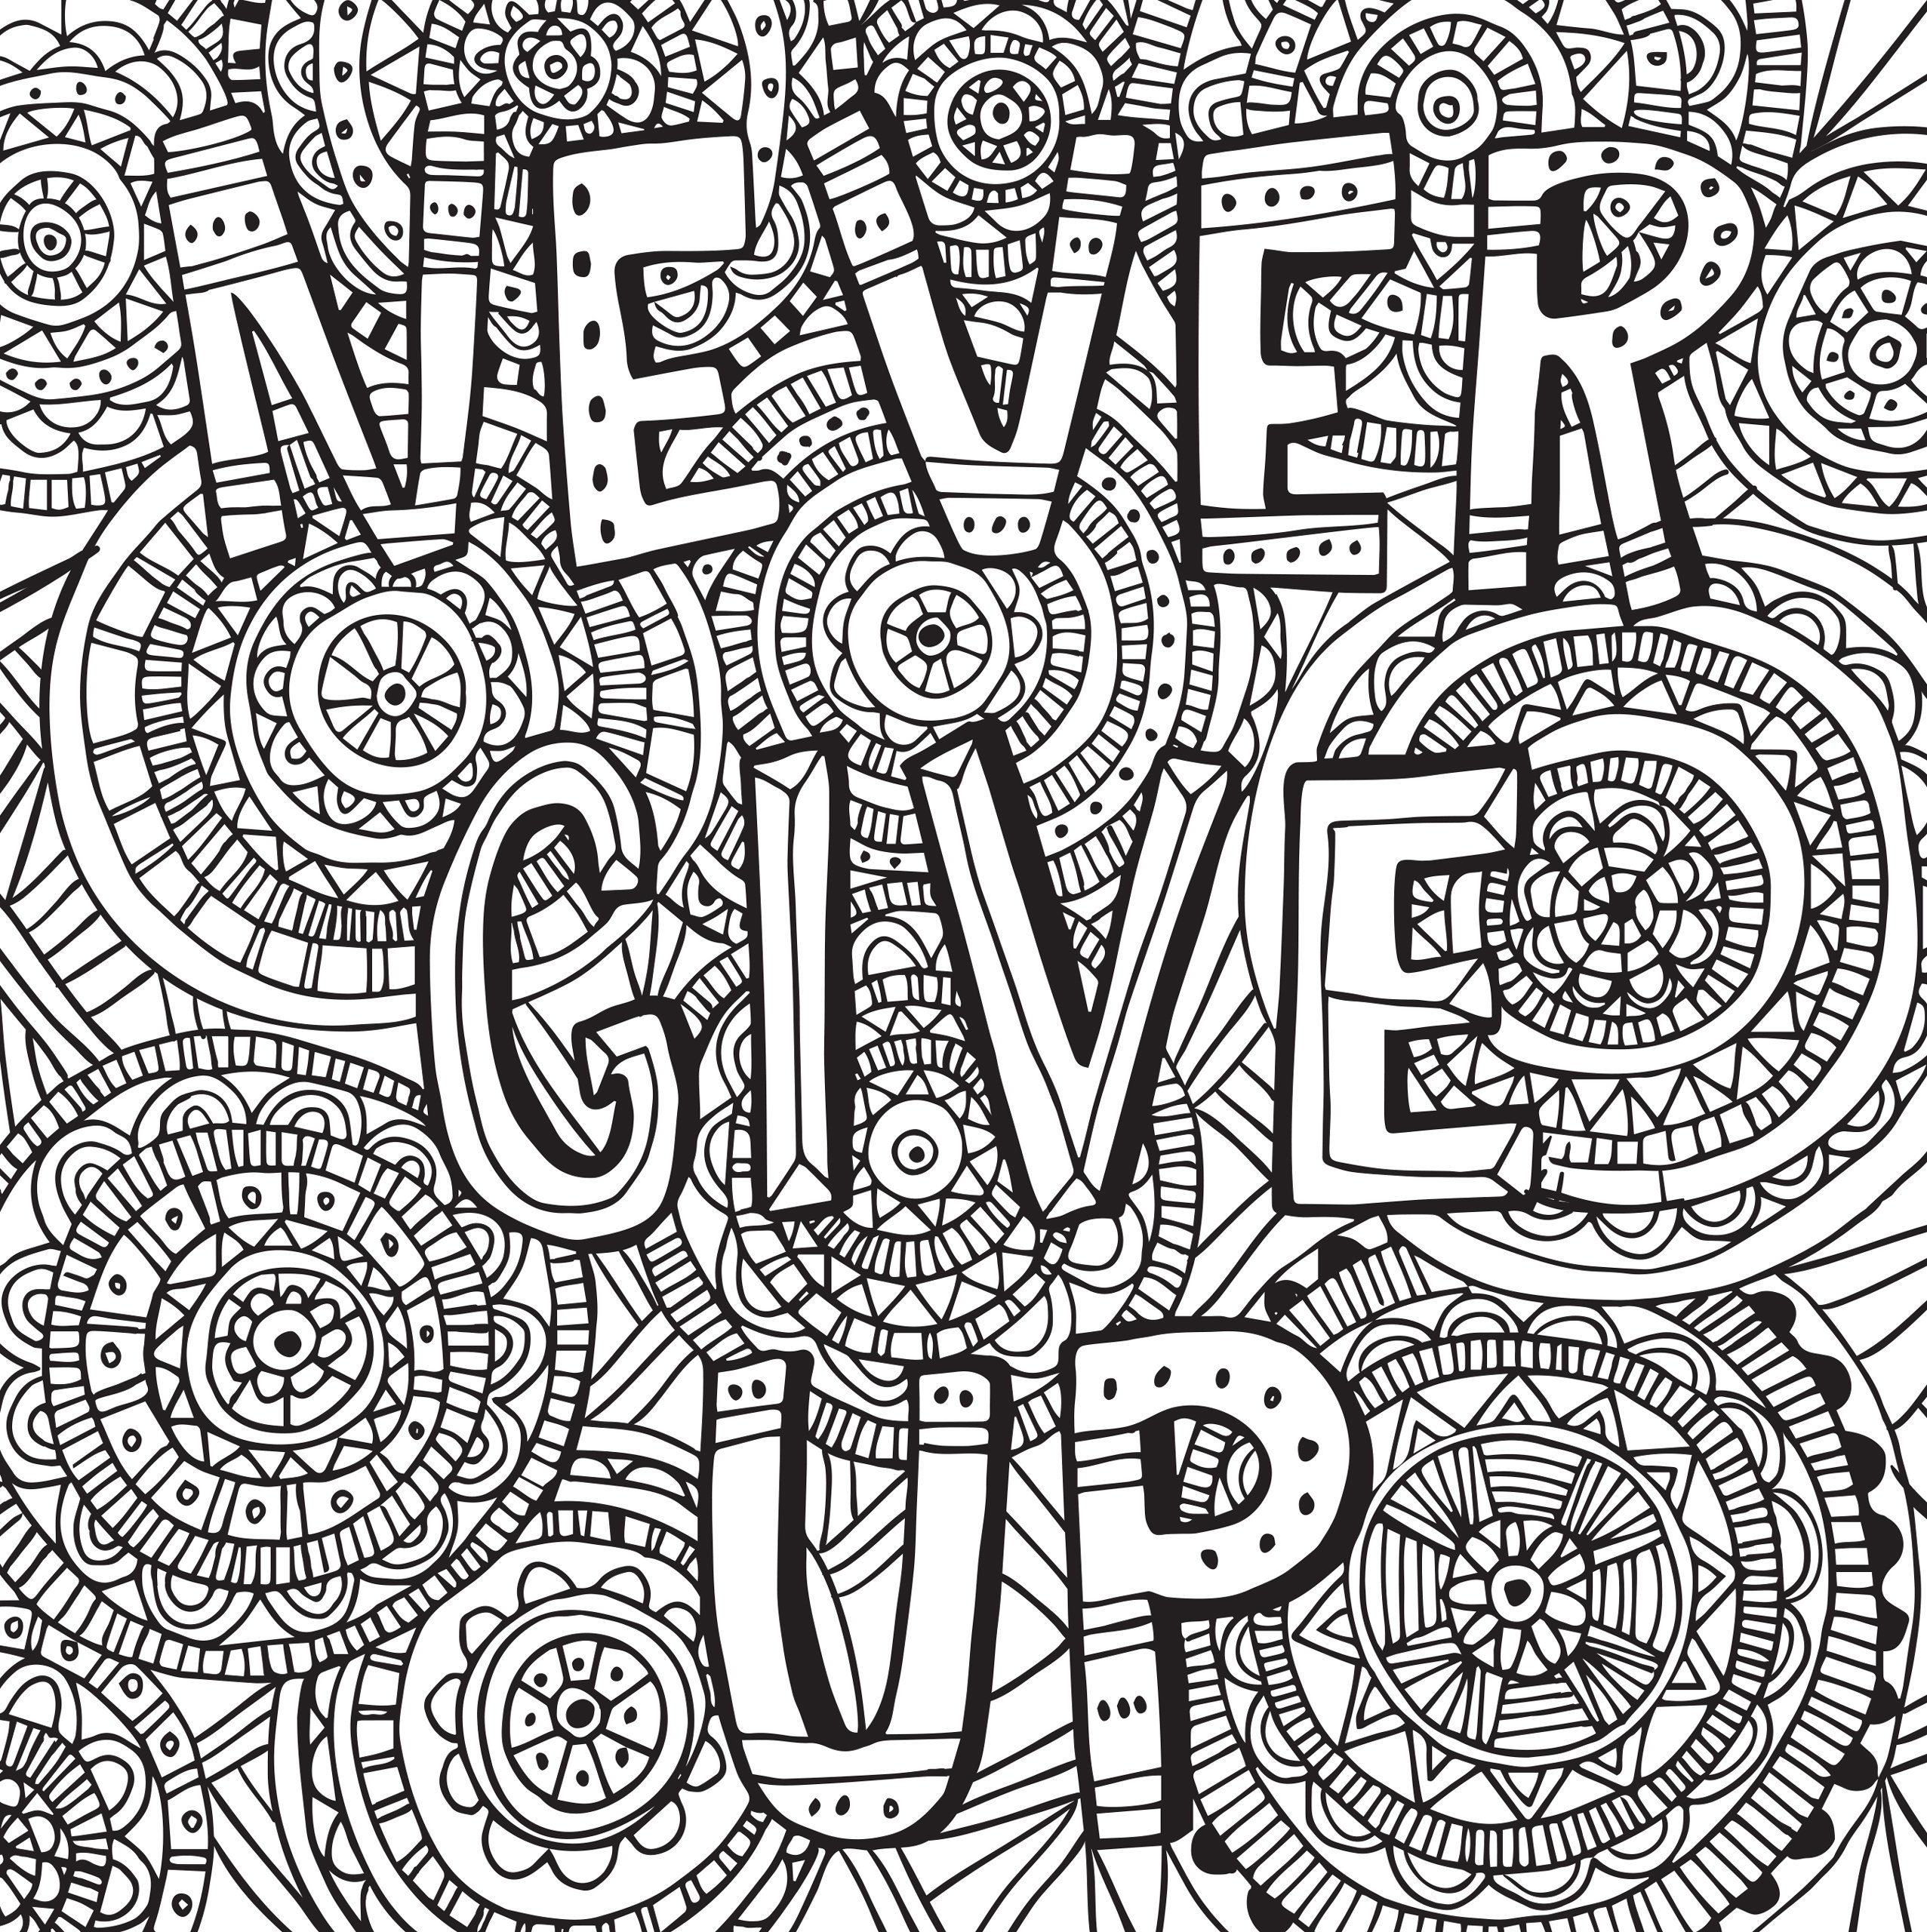 Inspirational Quotes Coloring Pages For Adults : Adult coloring pages inspirational just colorings